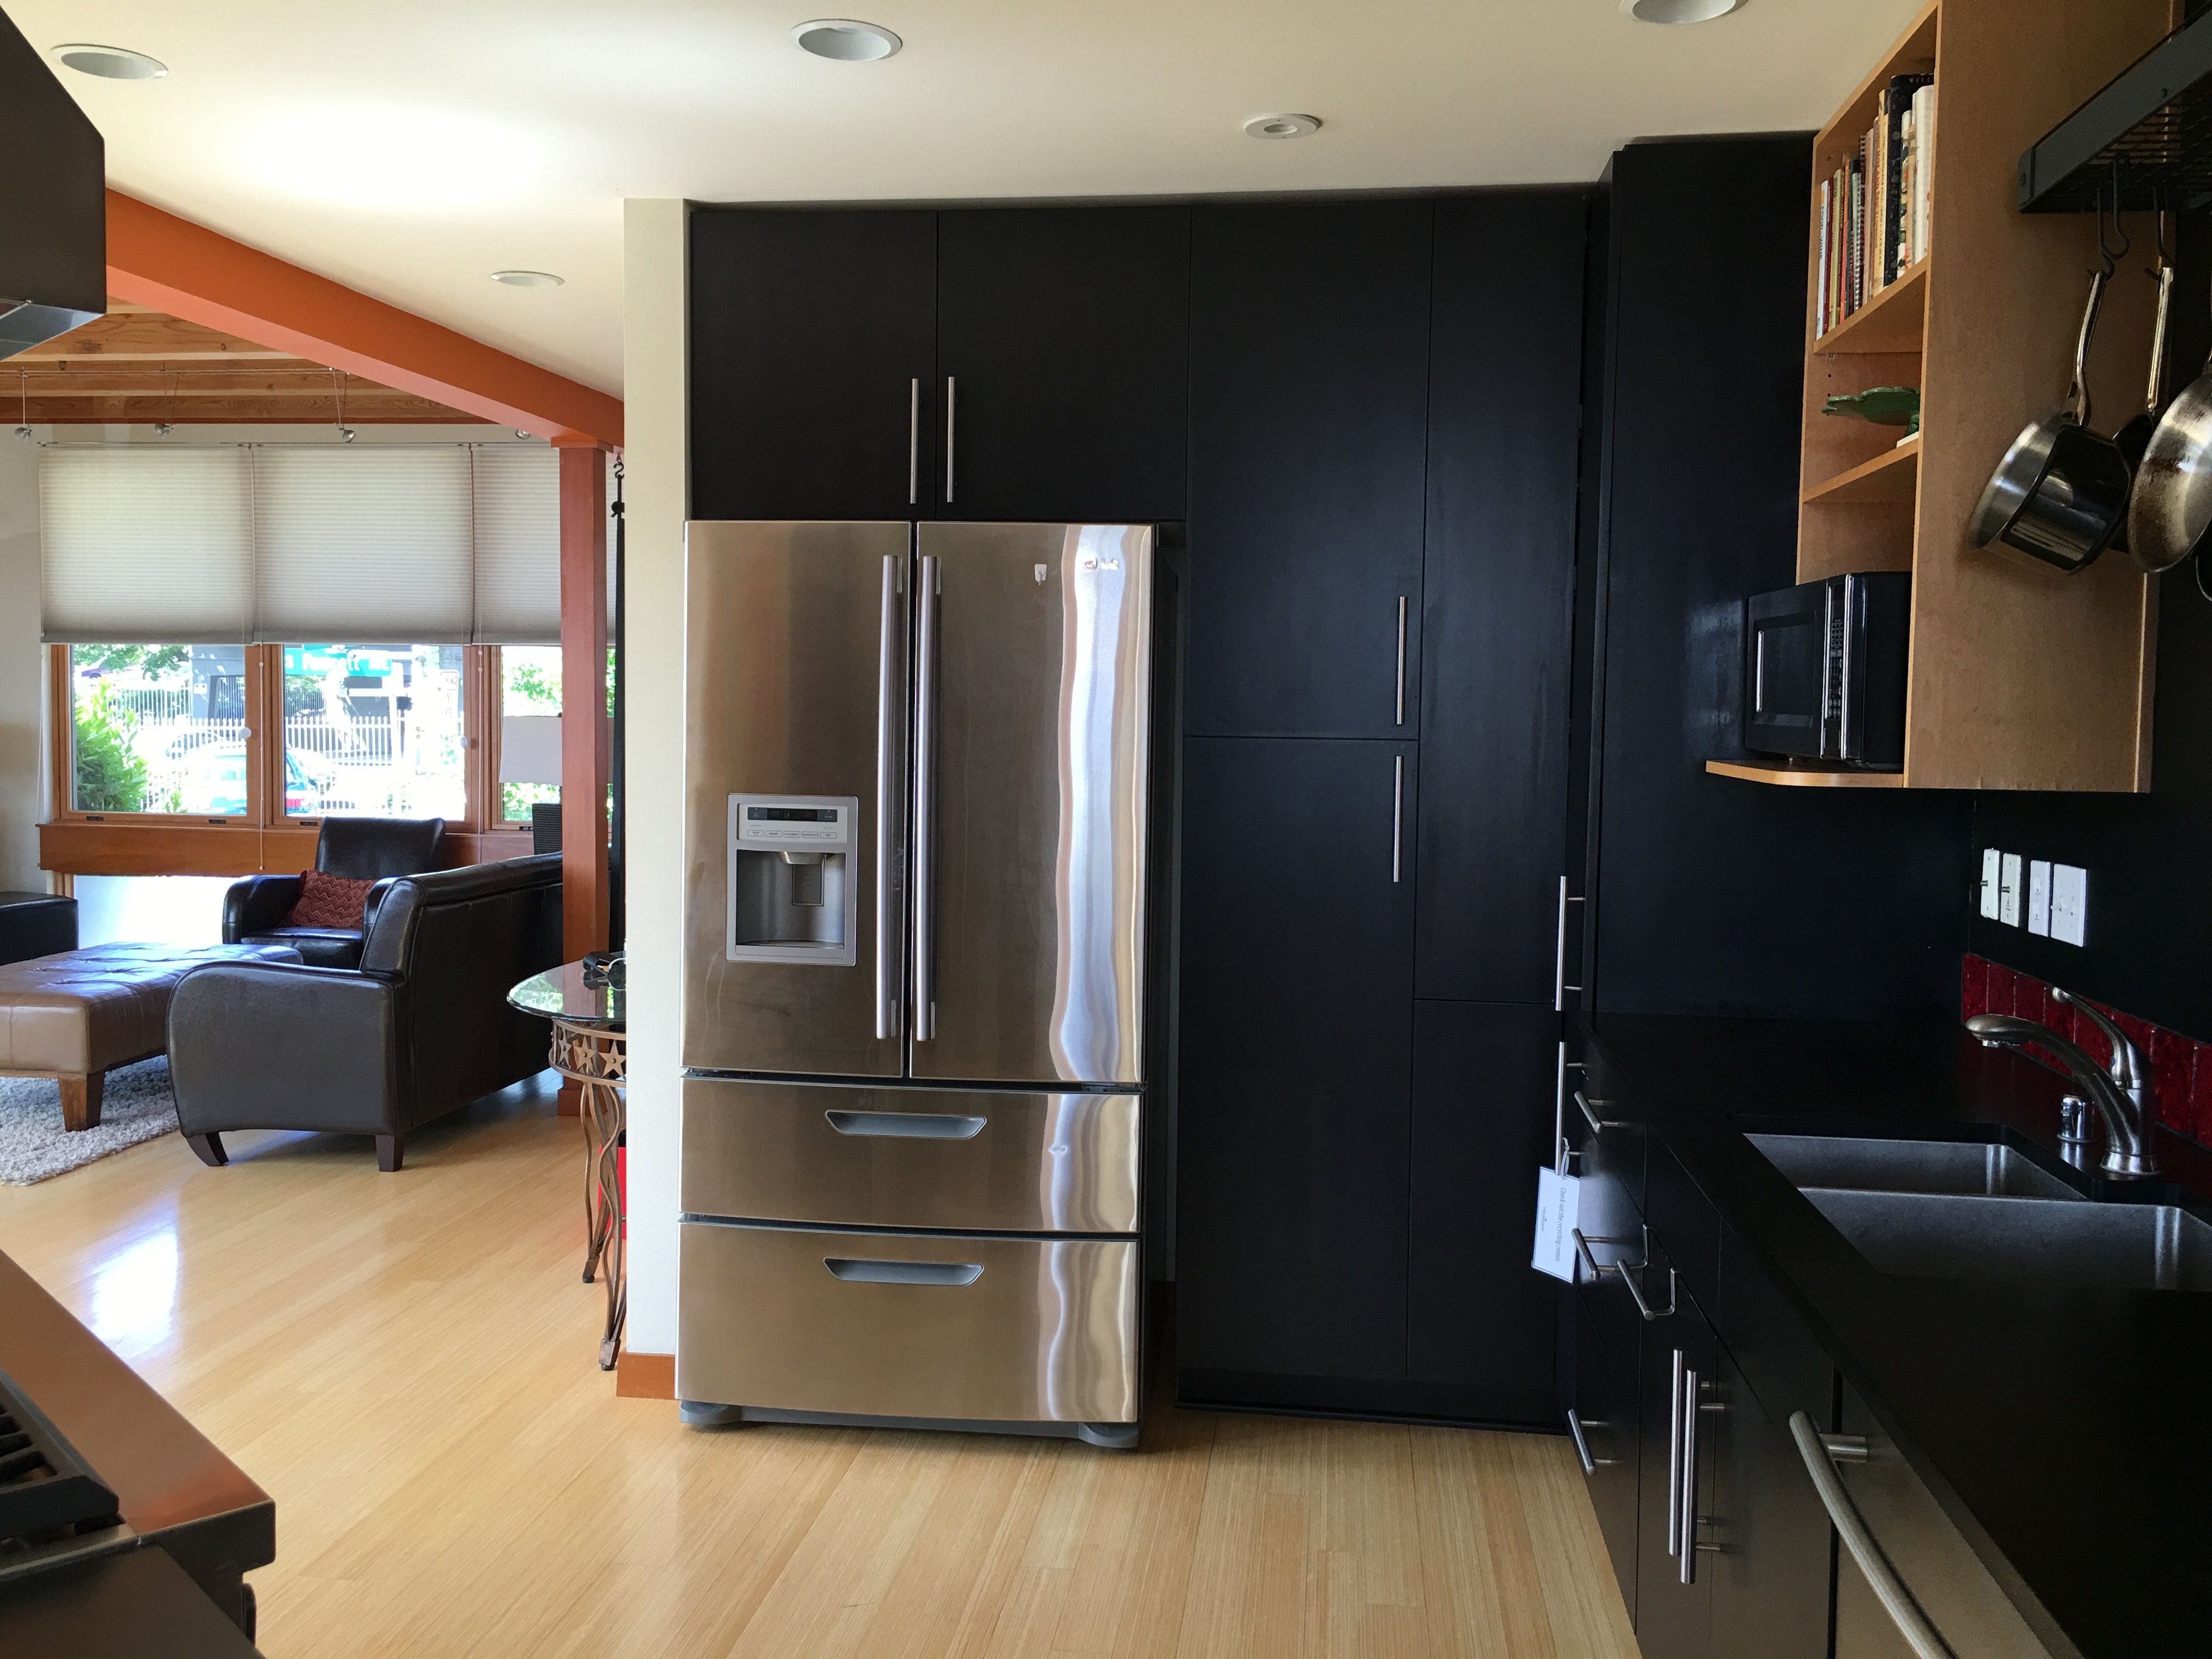 This LG french door refrigerator will be replaced by Gaggenau side ...